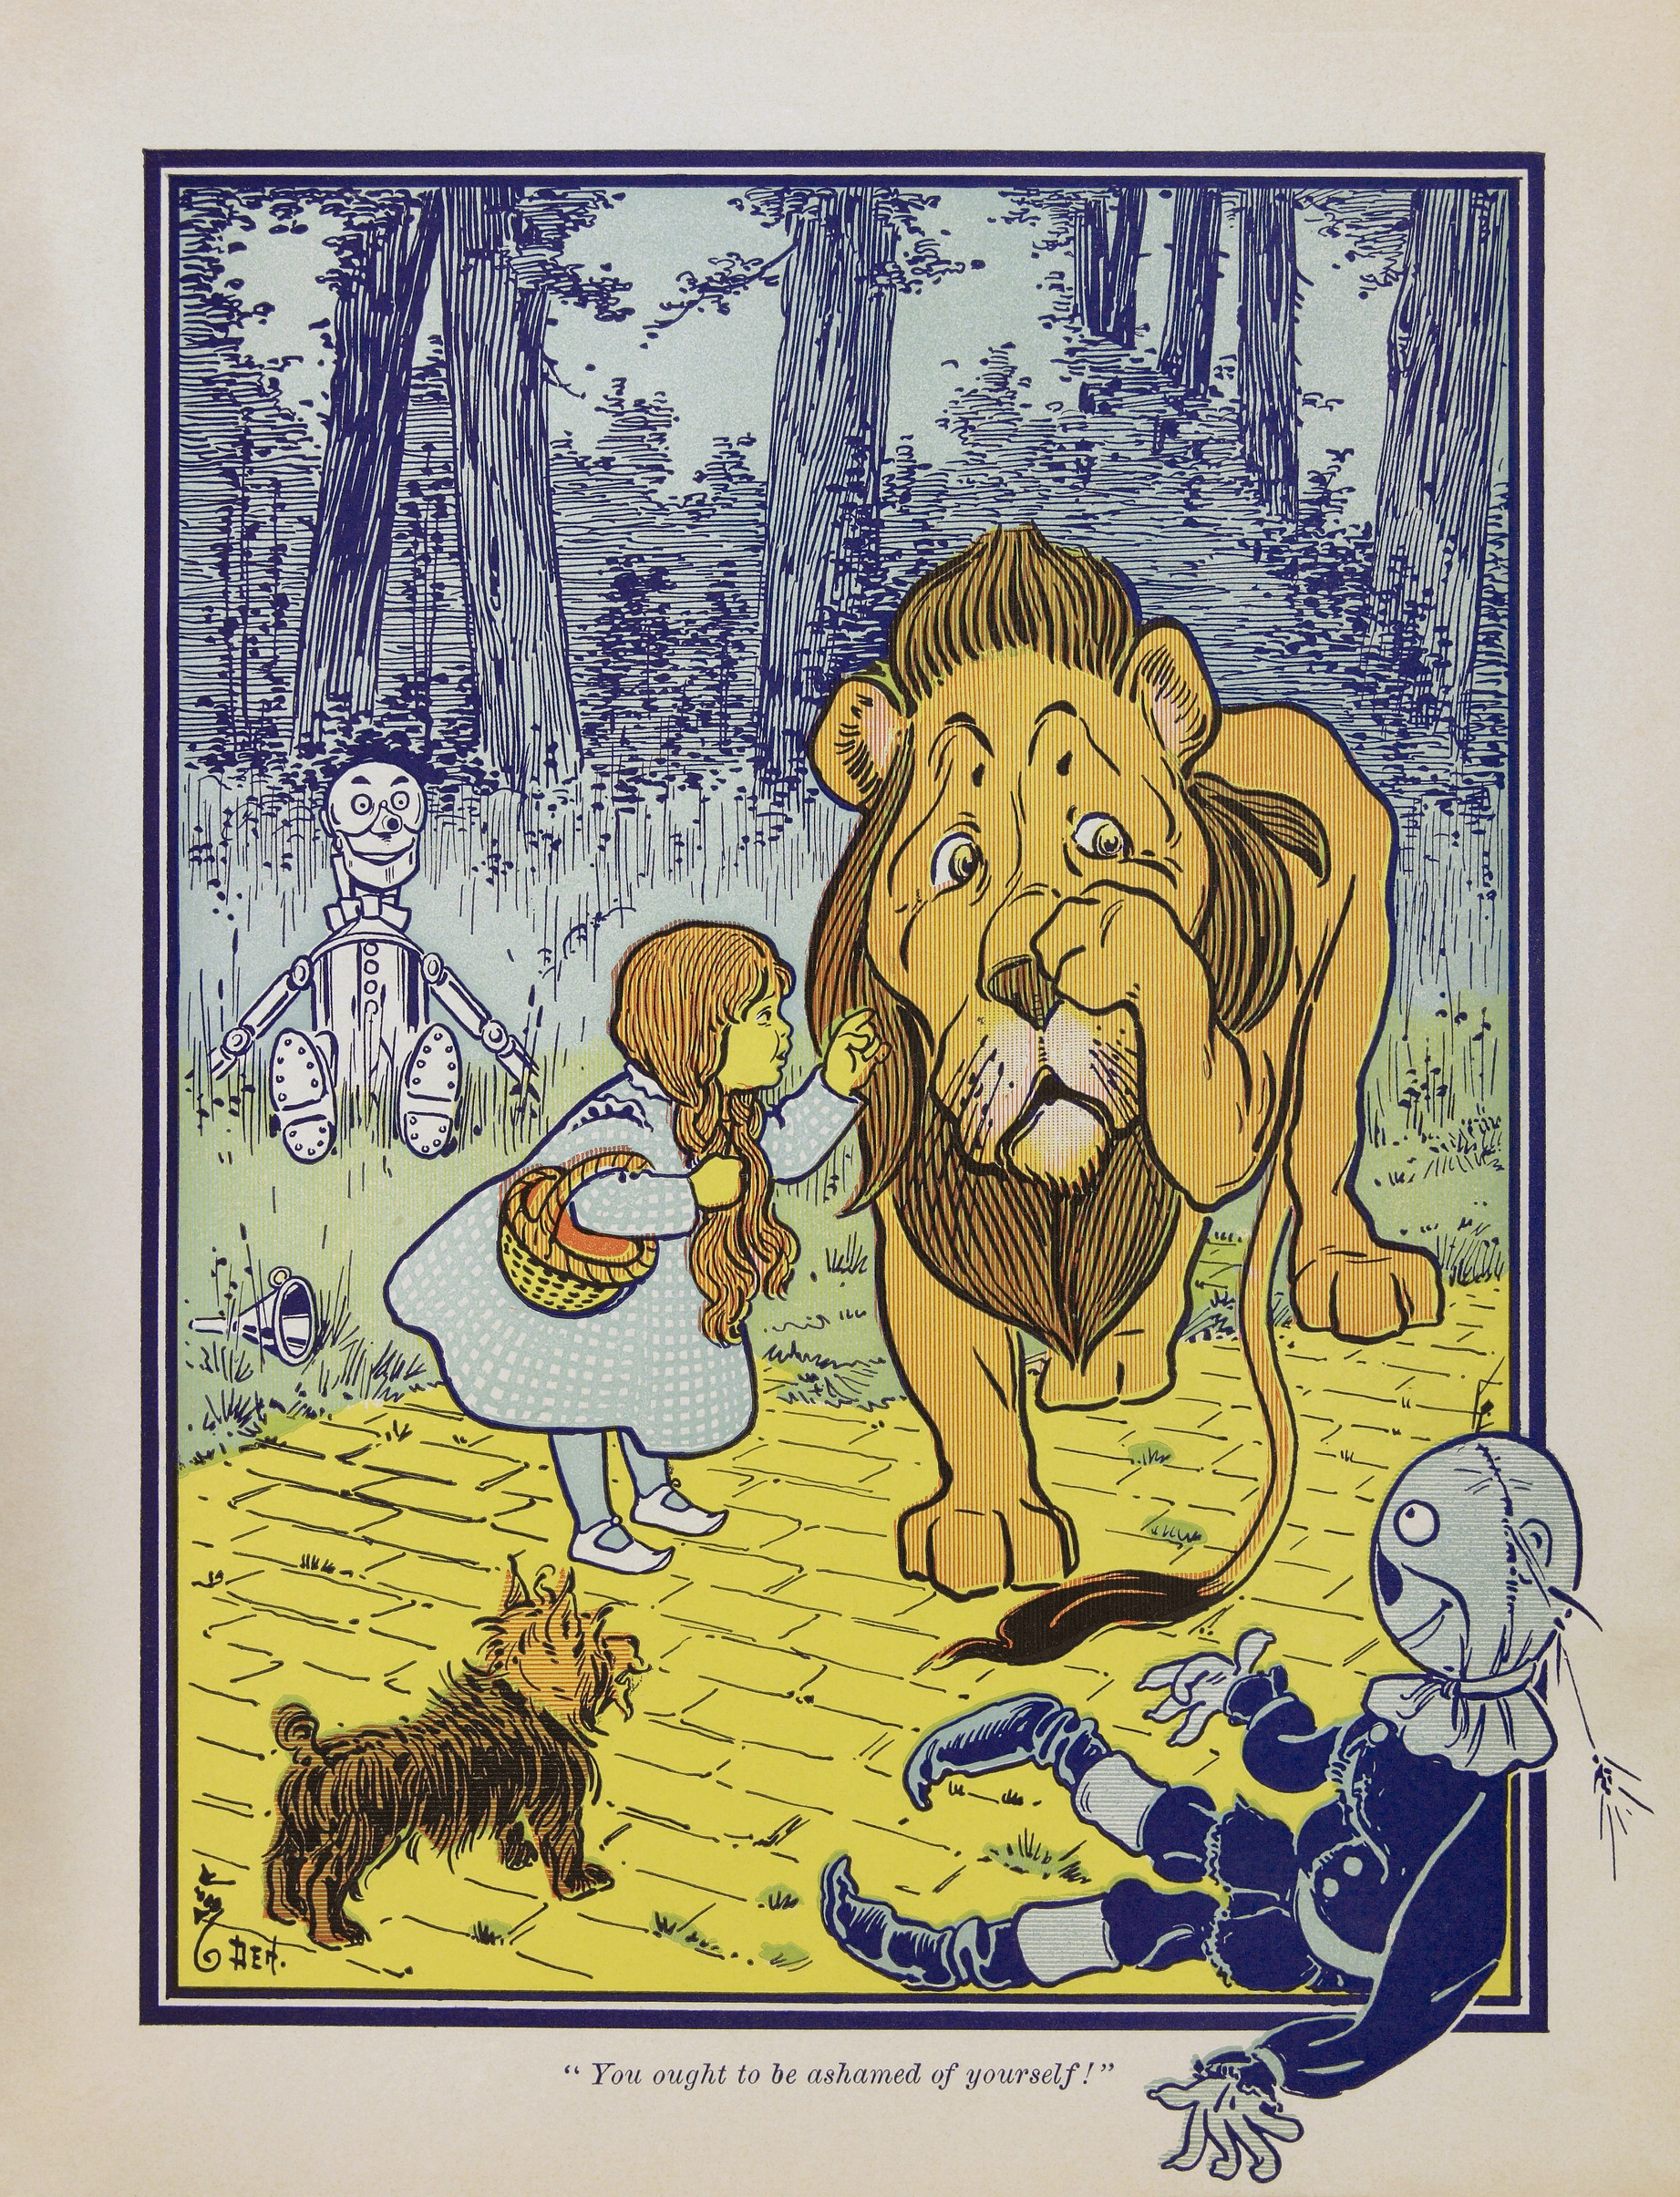 the wonderful wizard of oz dorothy meets the cowardly lion from the first edition